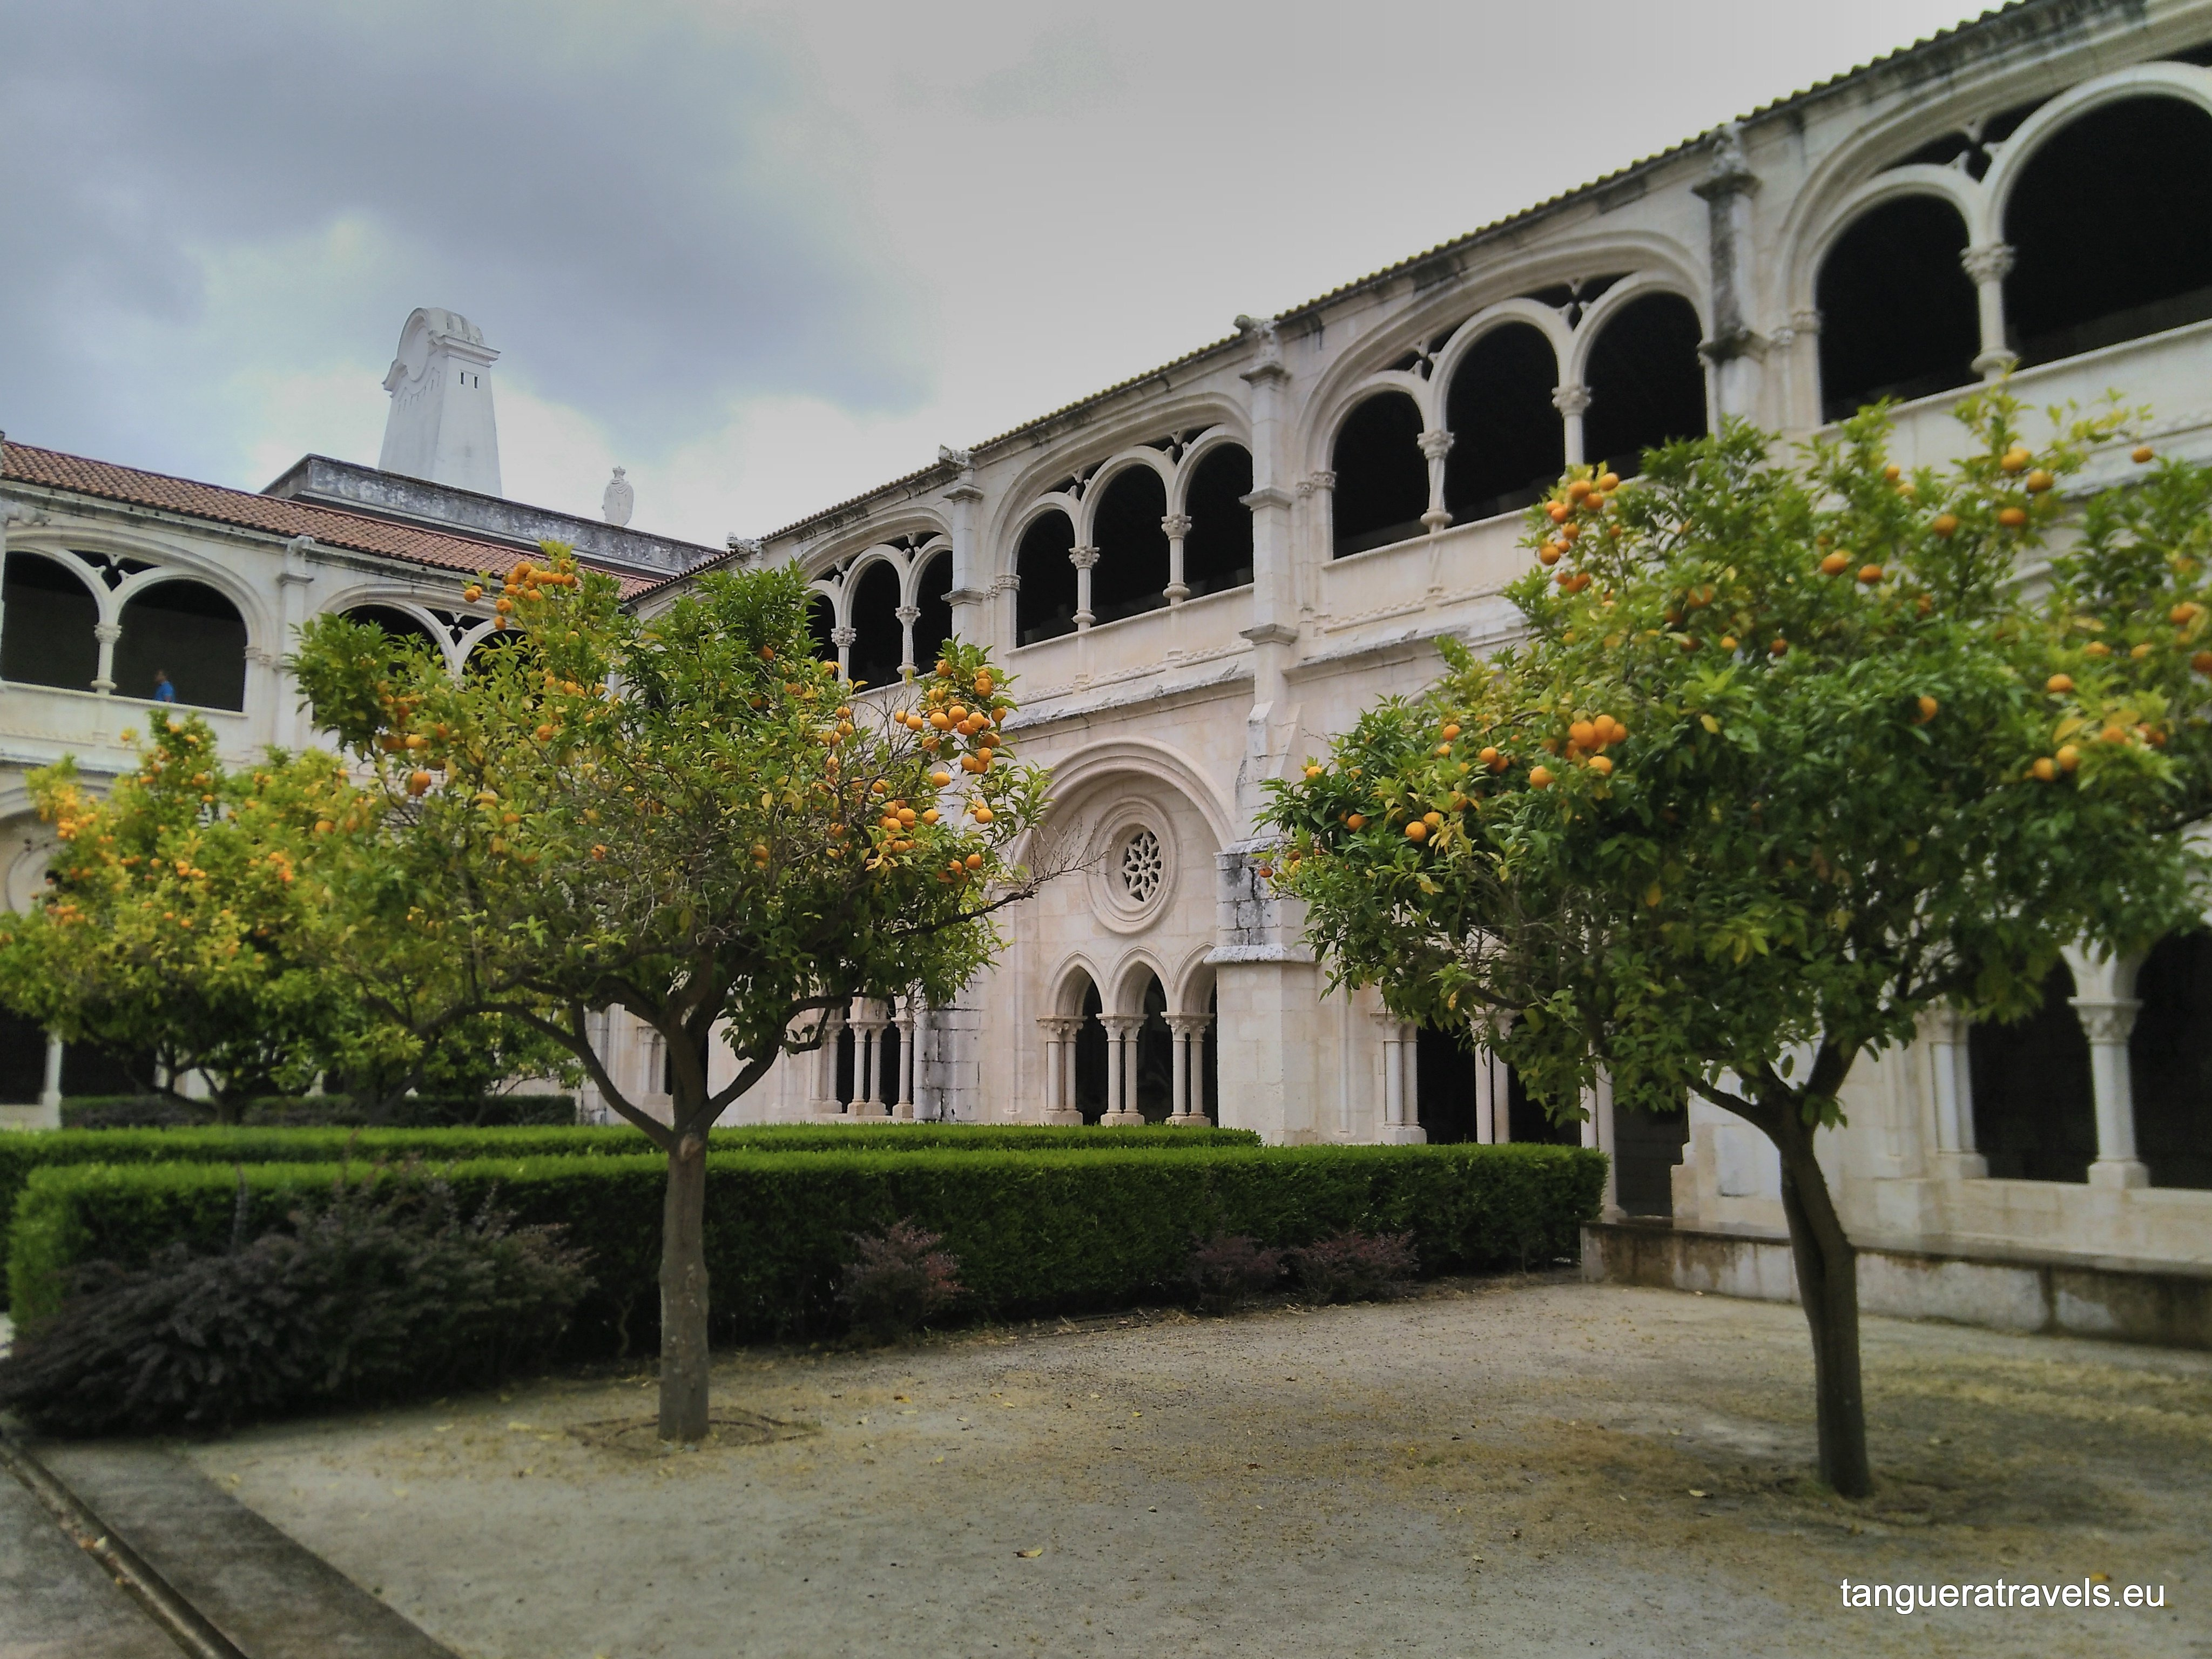 Inner courtyard in Alcobaca with orange trees